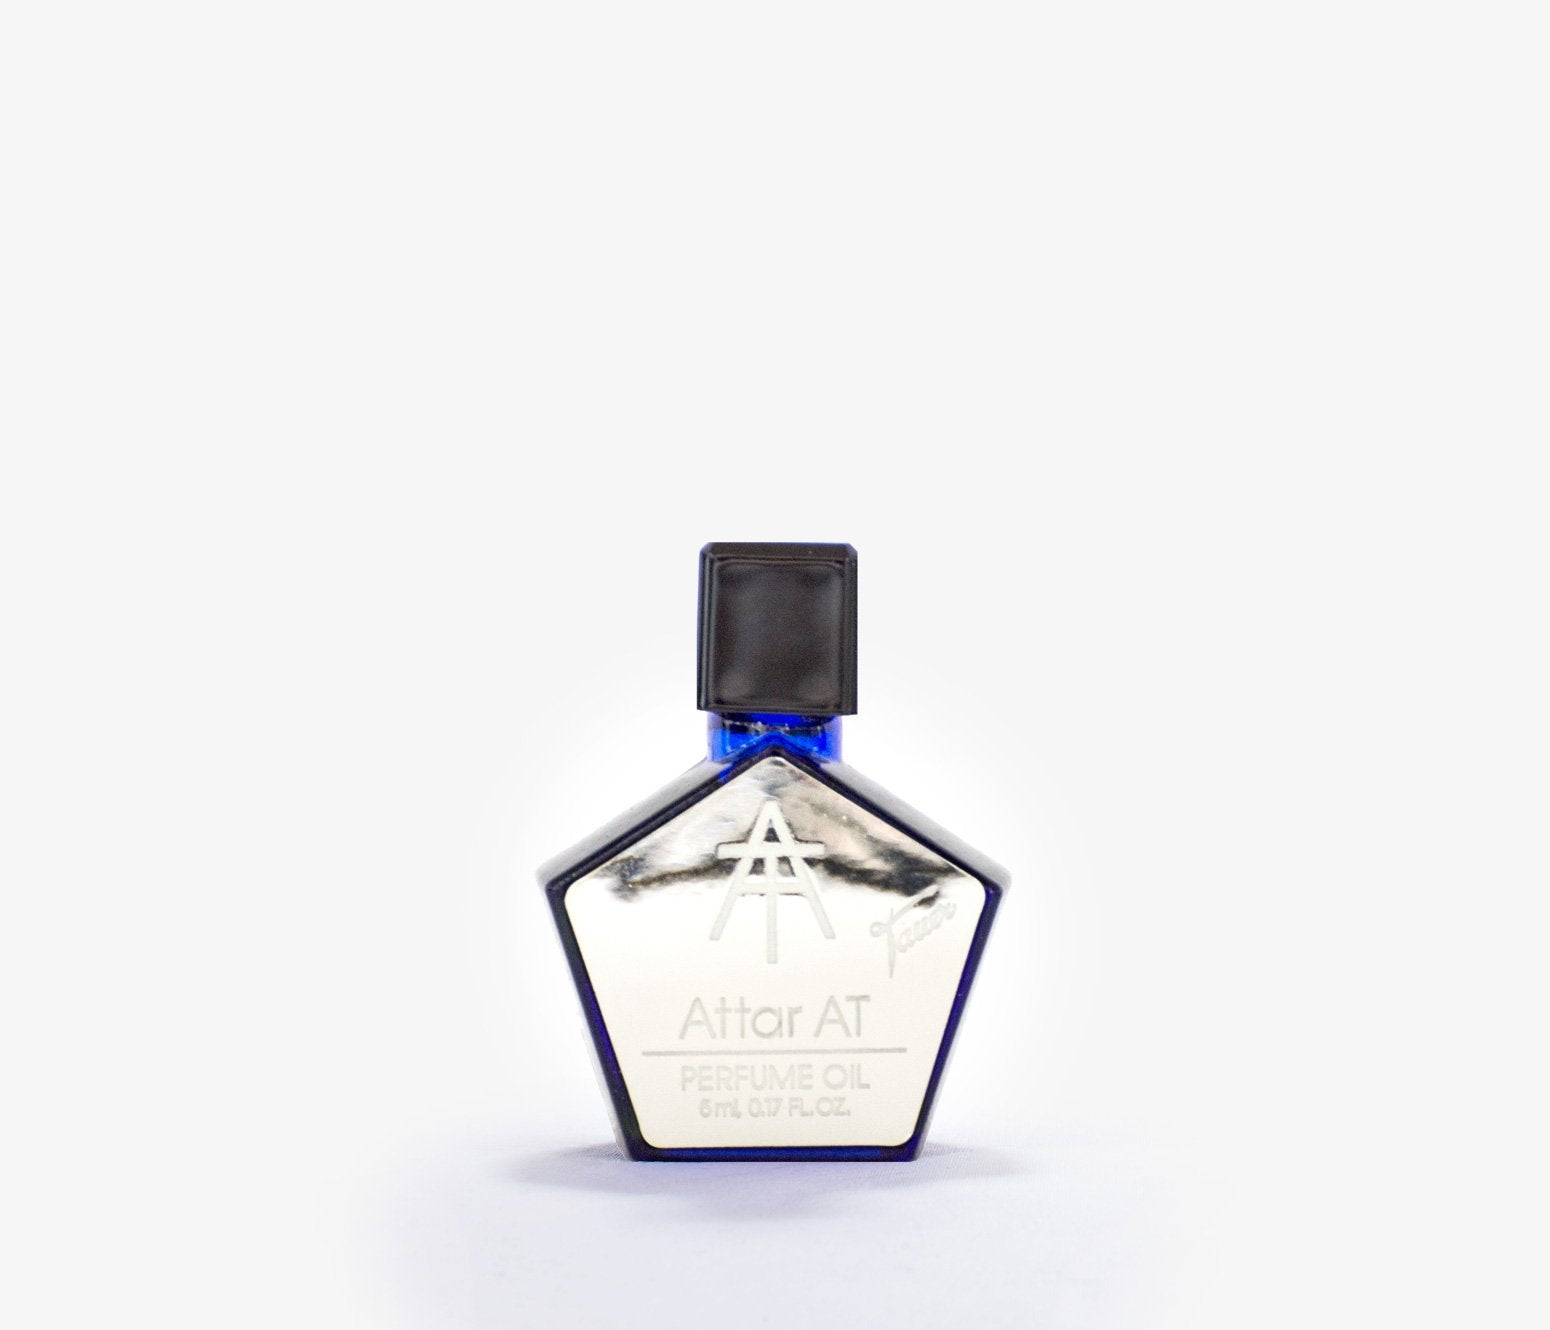 Tauer Perfumes - Attar AT Perfume Oil - 5ml Oil - MPO001 - Product Image - Fragrance - Les Senteurs